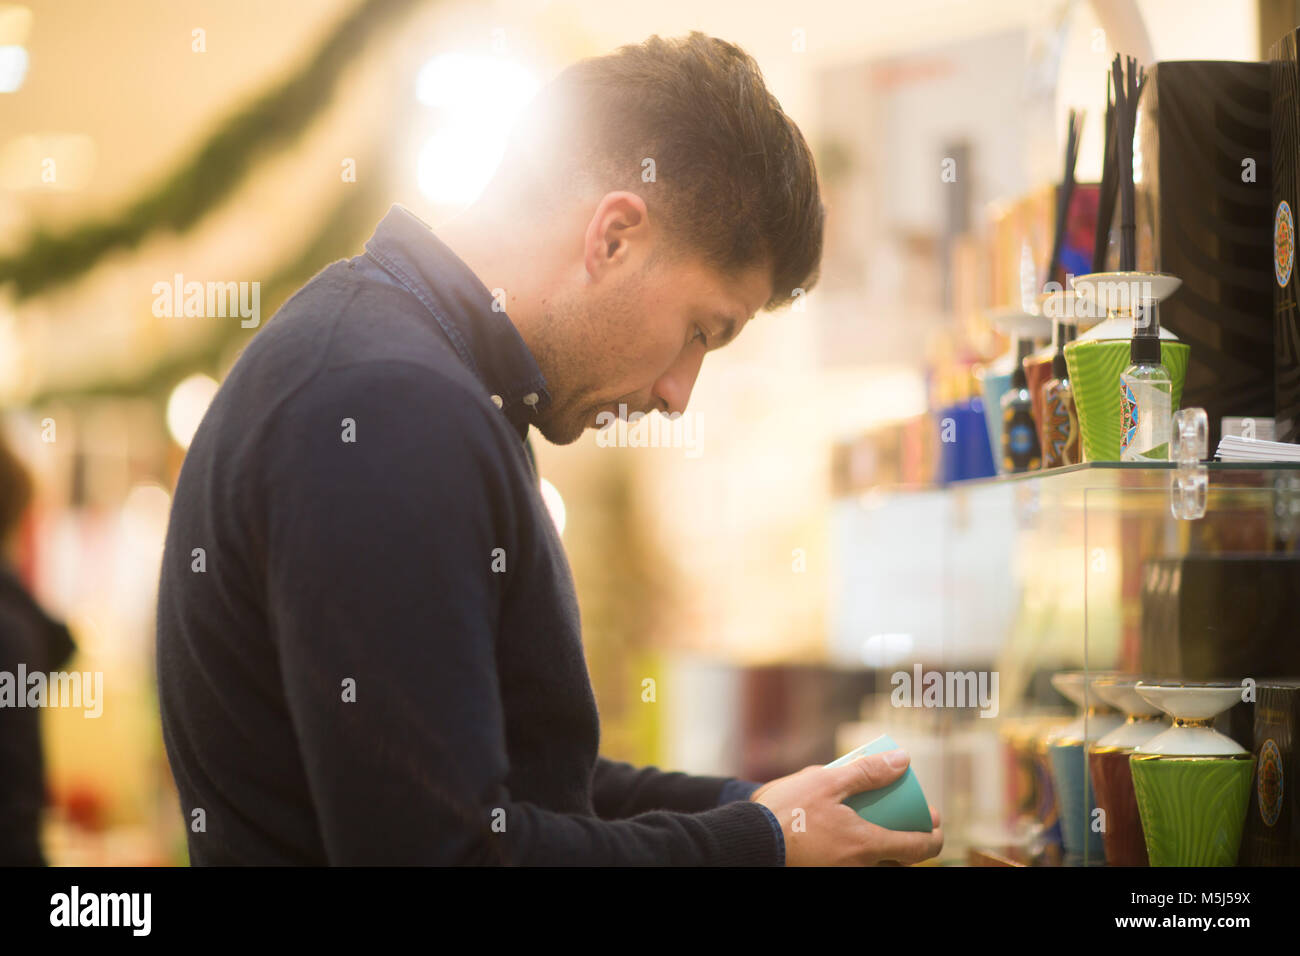 Uncertain man looking for Christmas present in a shop - Stock Image